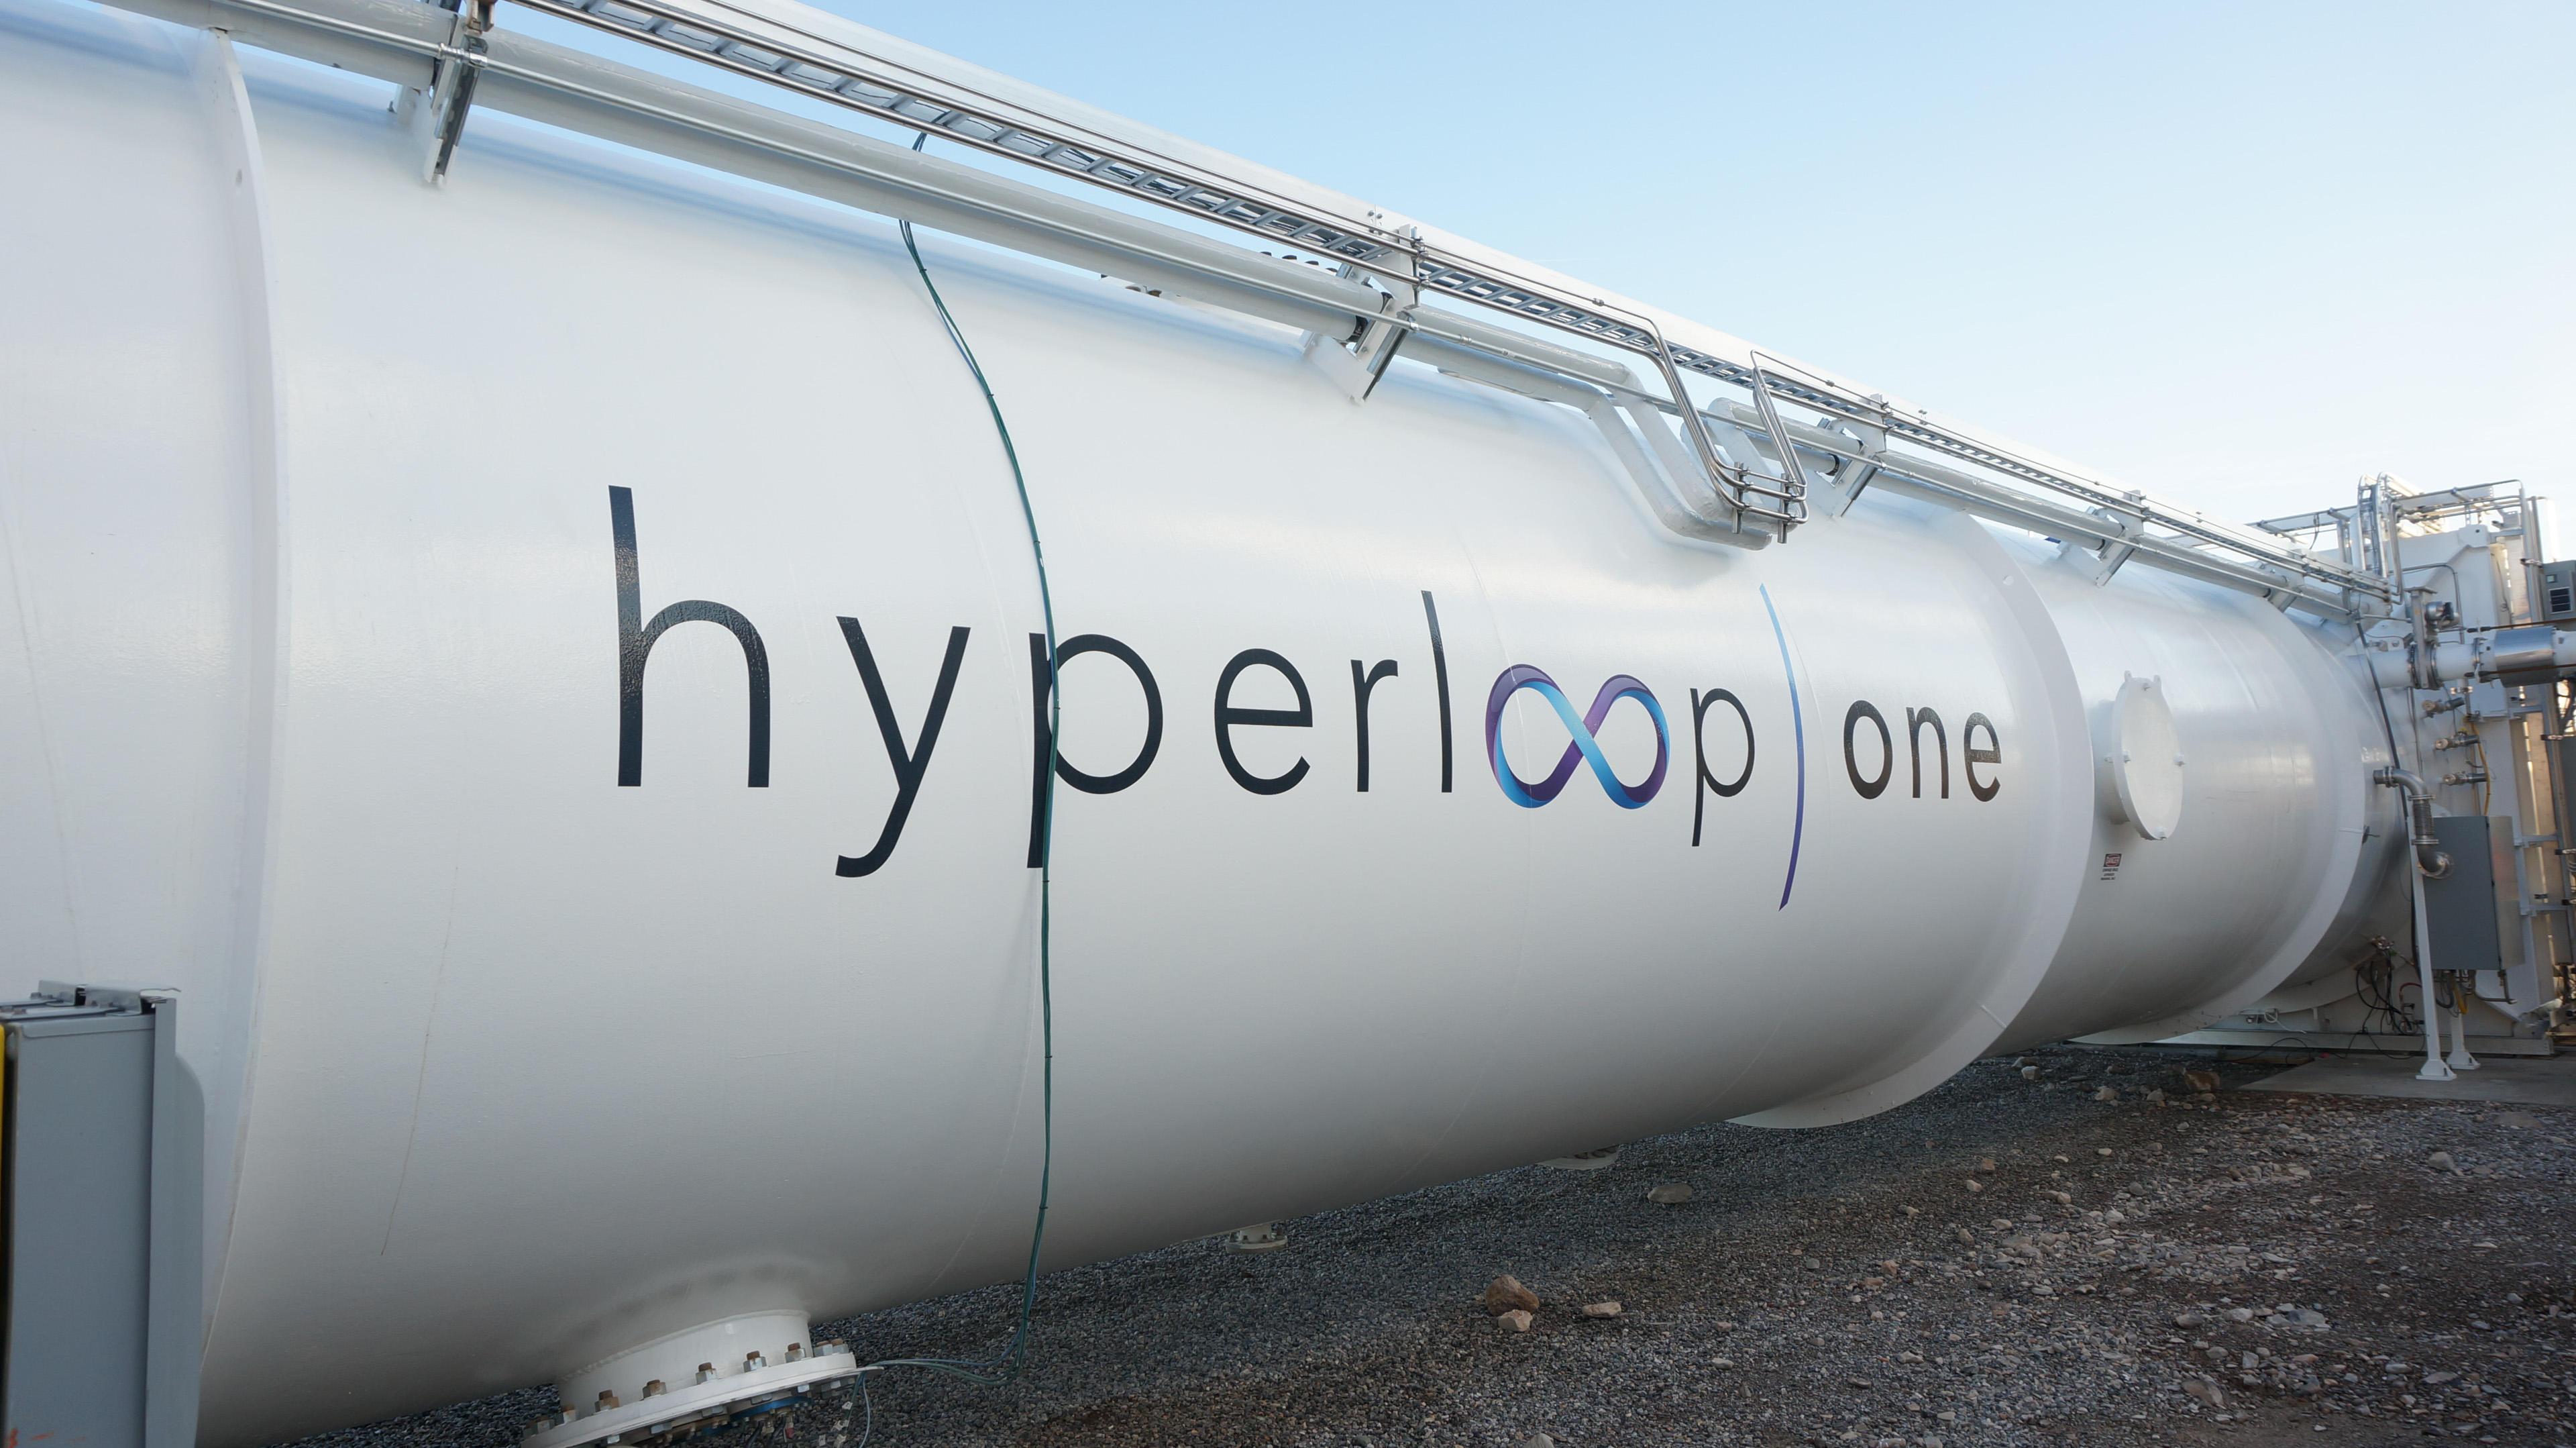 hyperloop-one-tour-01707